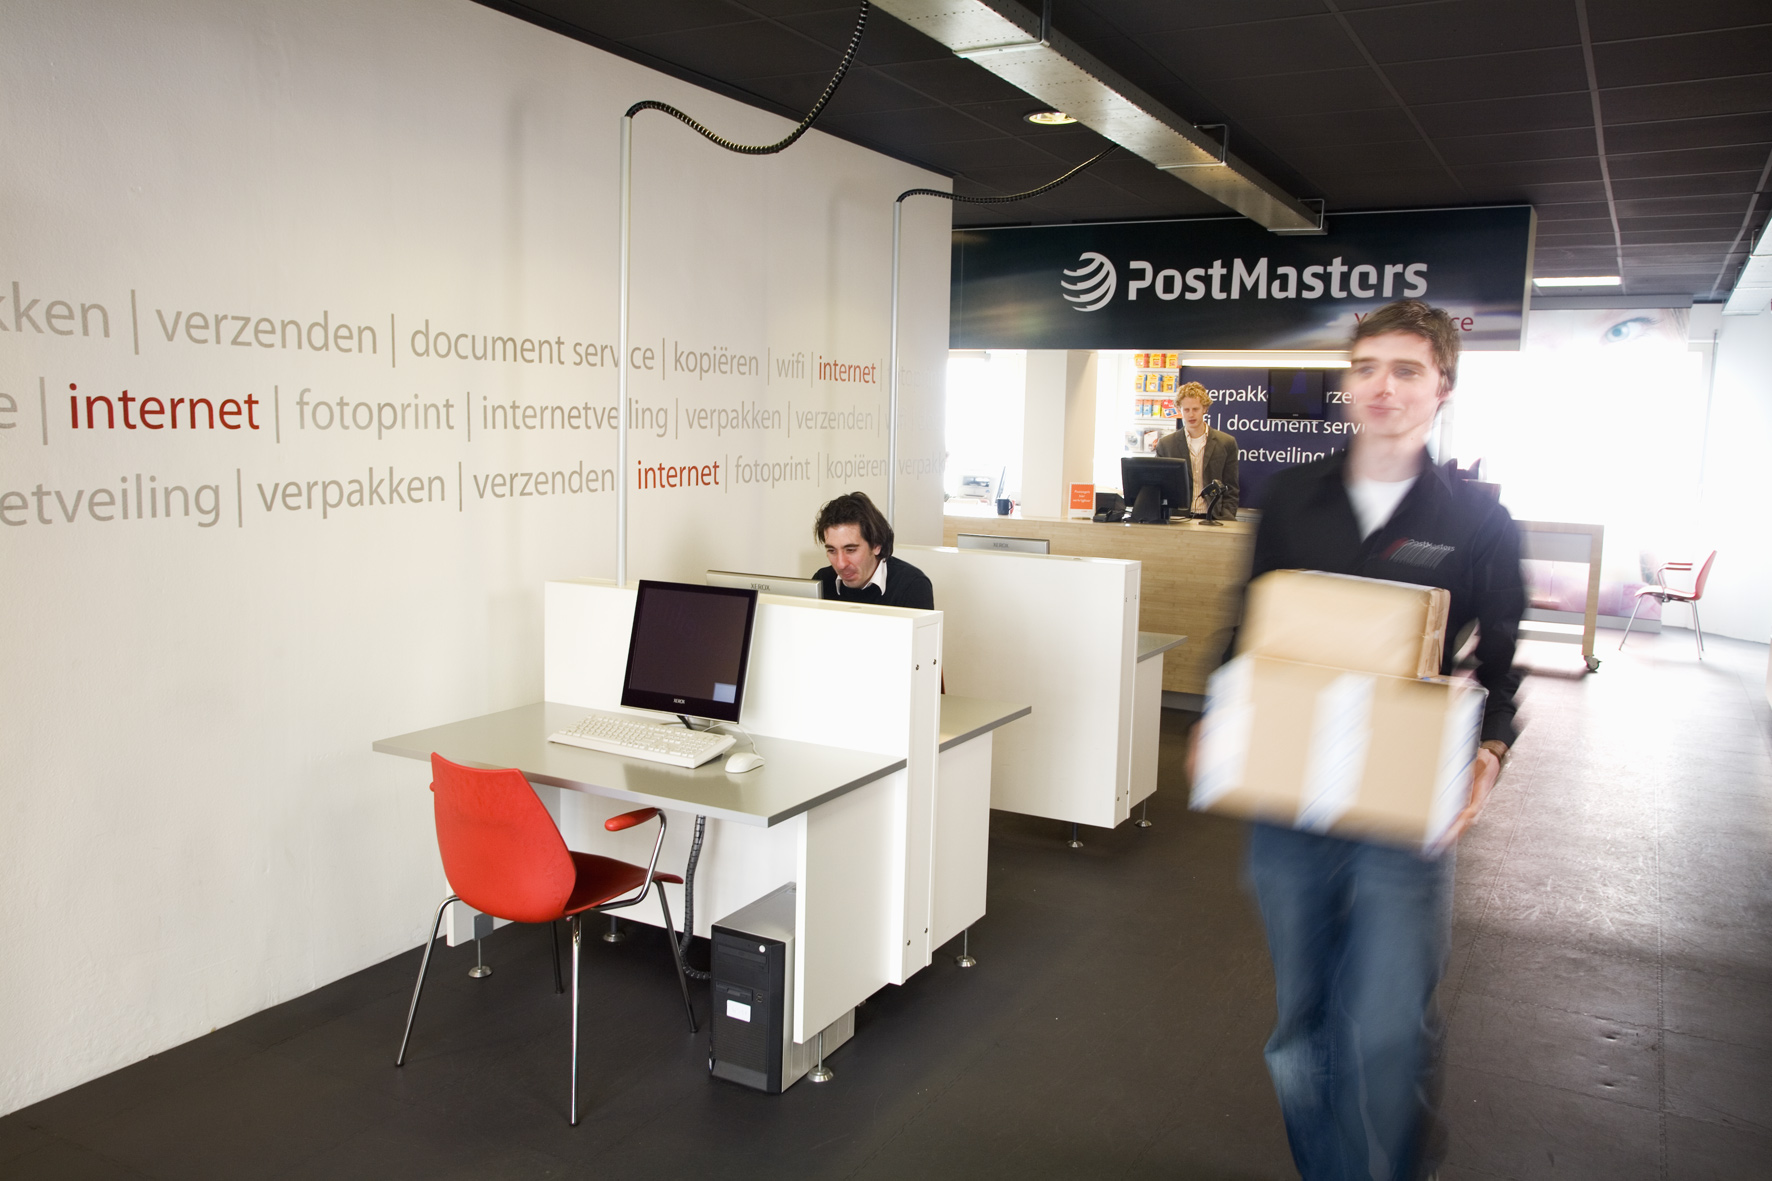 PostMasters Express